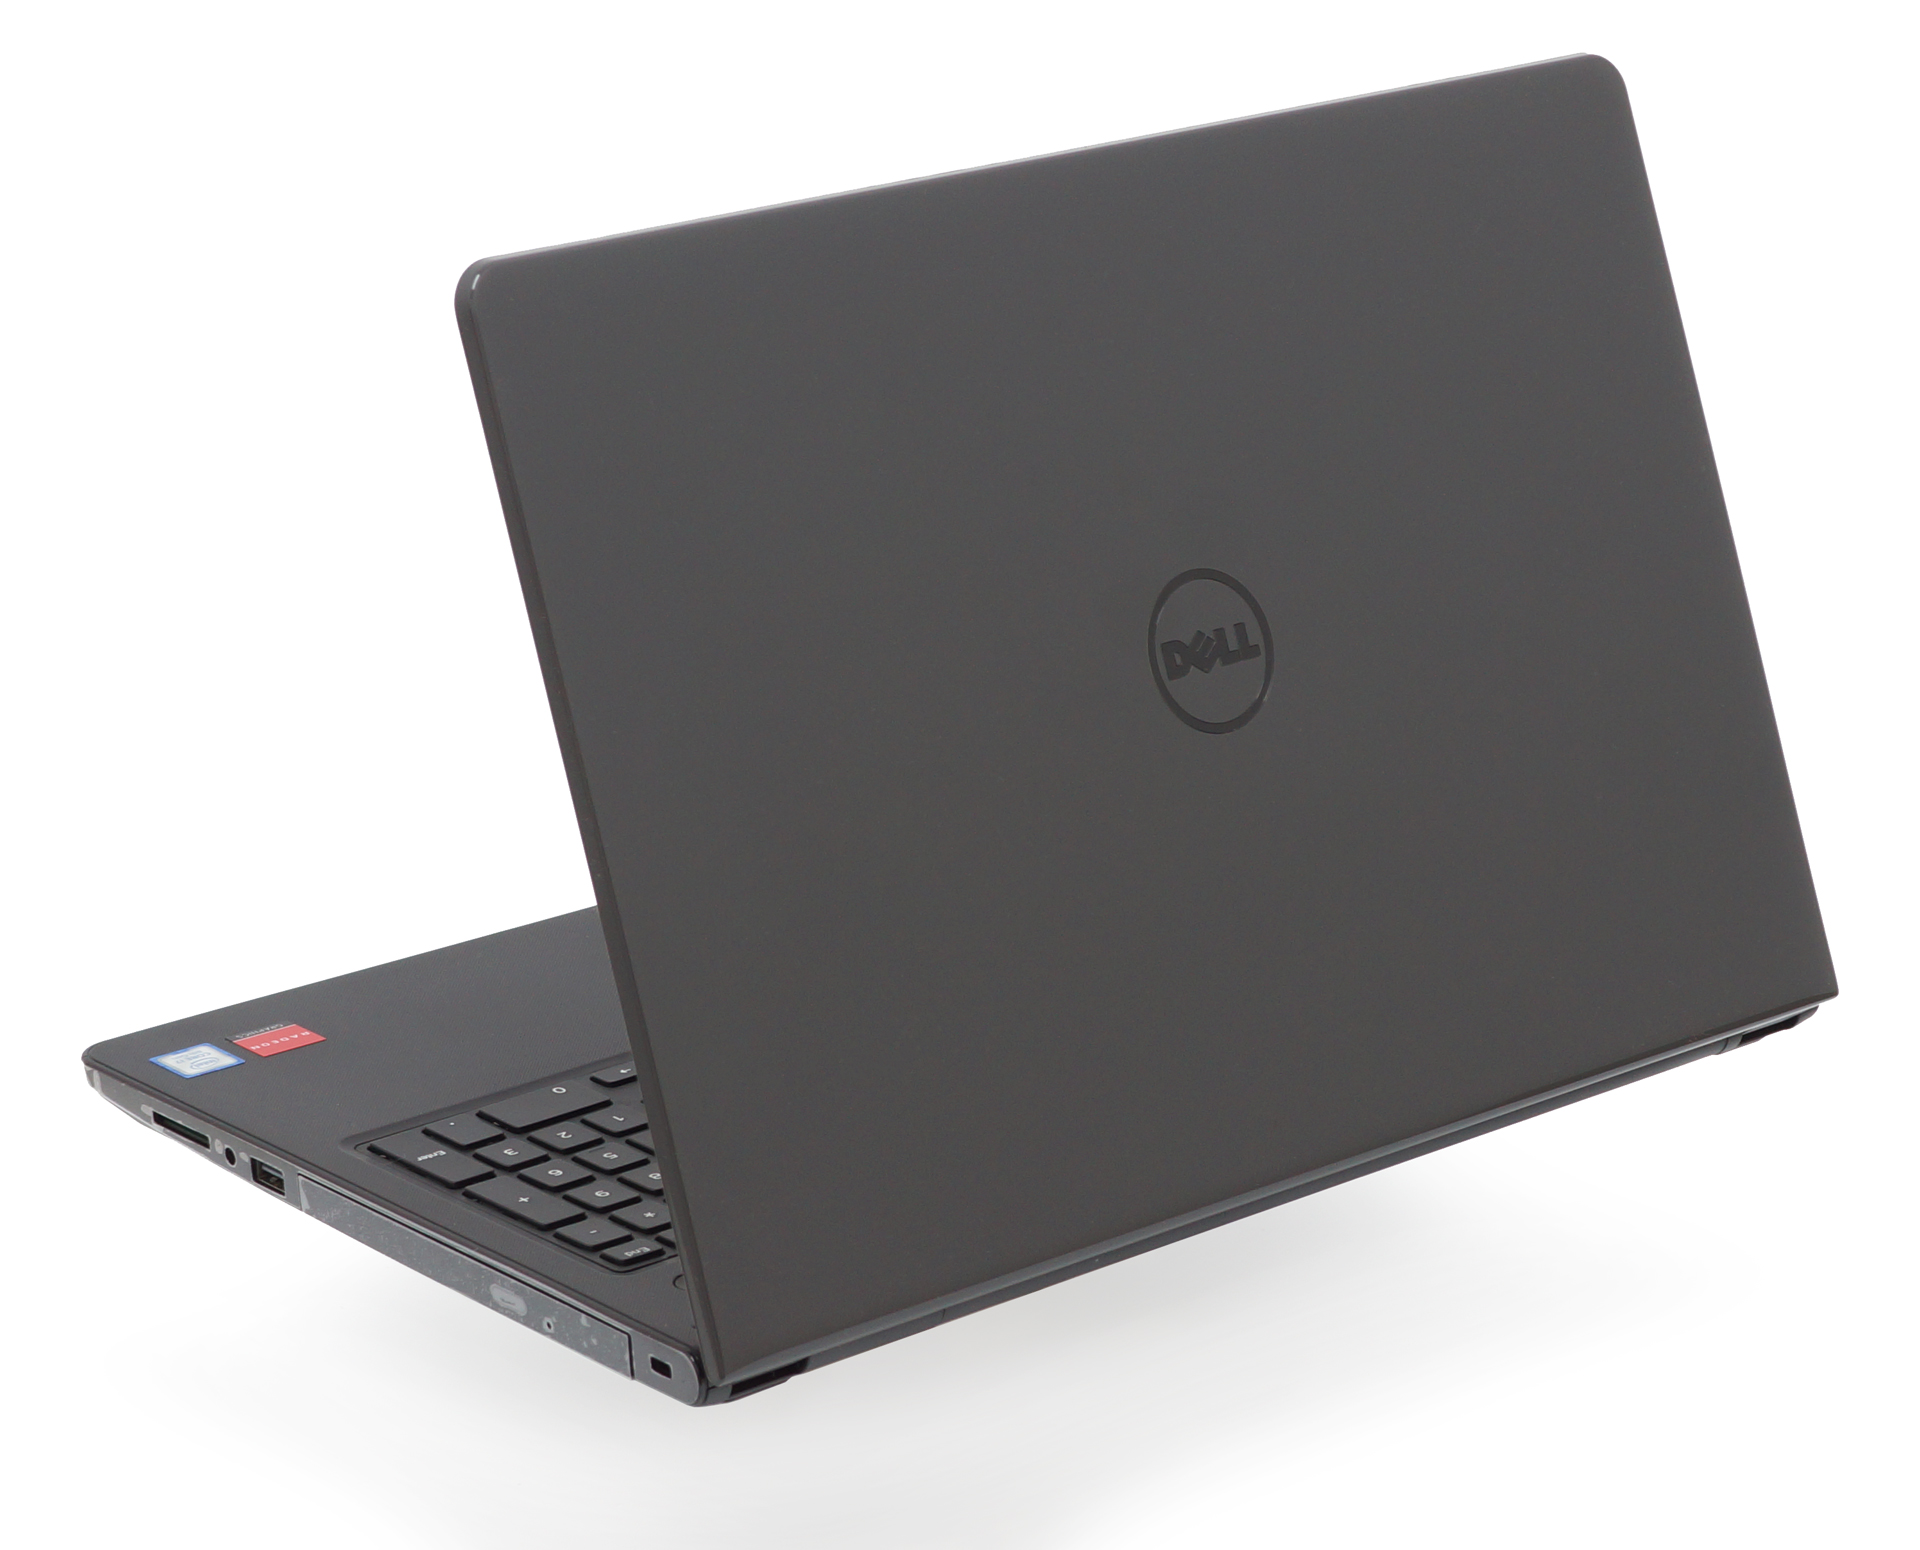 Dell Inspiron 15 3576 review – ultra-budget device with Core